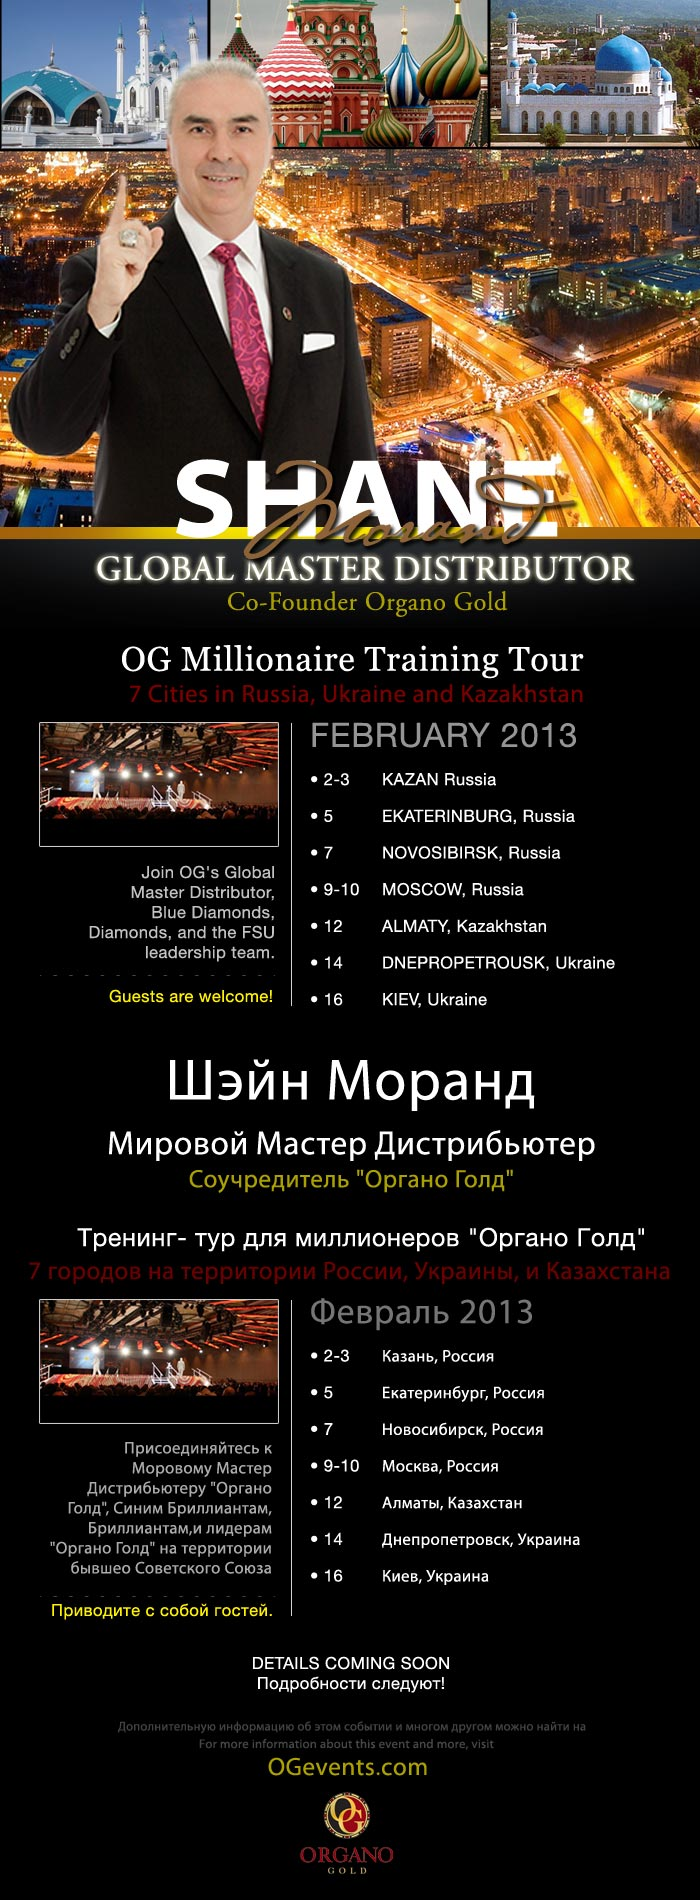 Shane Morand (Global Master Distributor) - OG Millionaire Training Tour - 3 Countries & 7 Cities in the Former Soviet Union